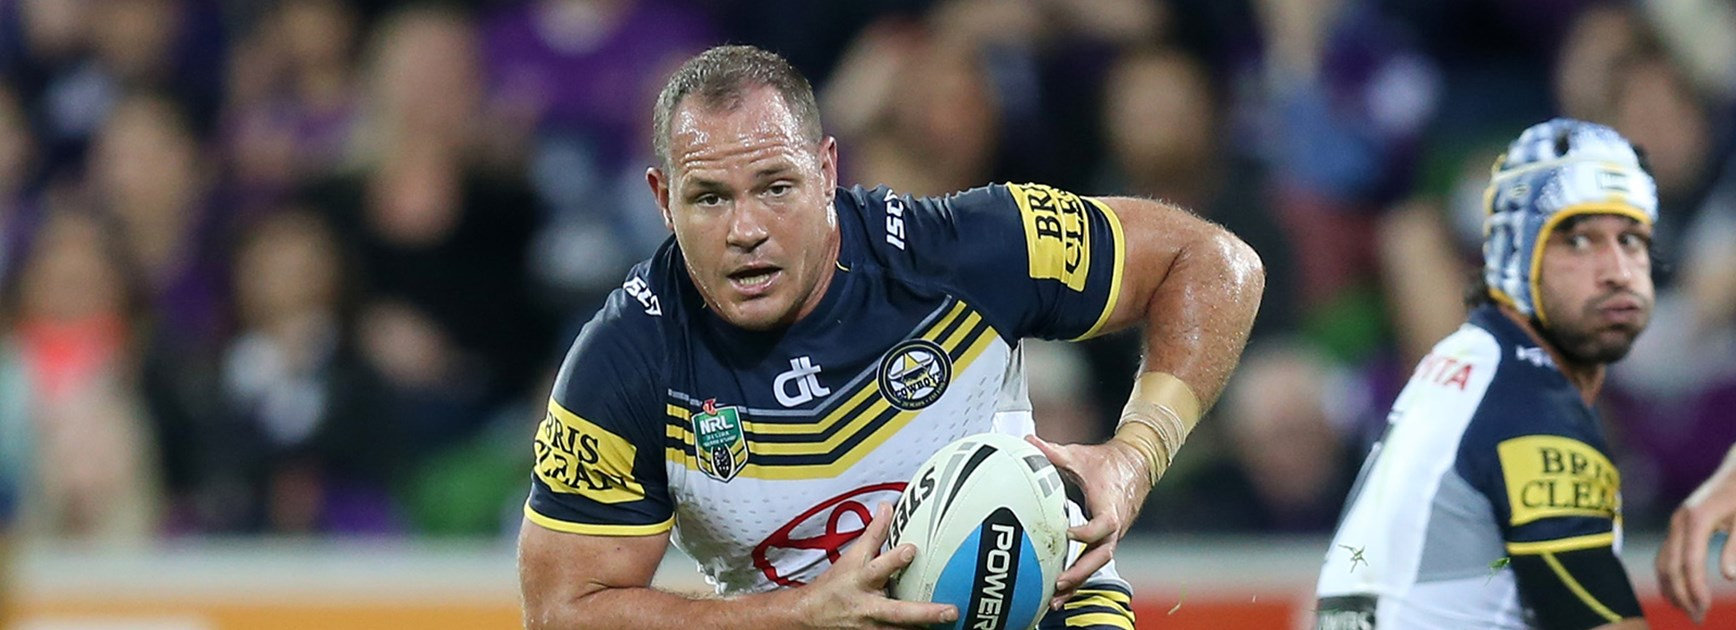 North Queensland prop Matt Scott played a big role in the Cowboys' Preliminary Final win over the Storm.